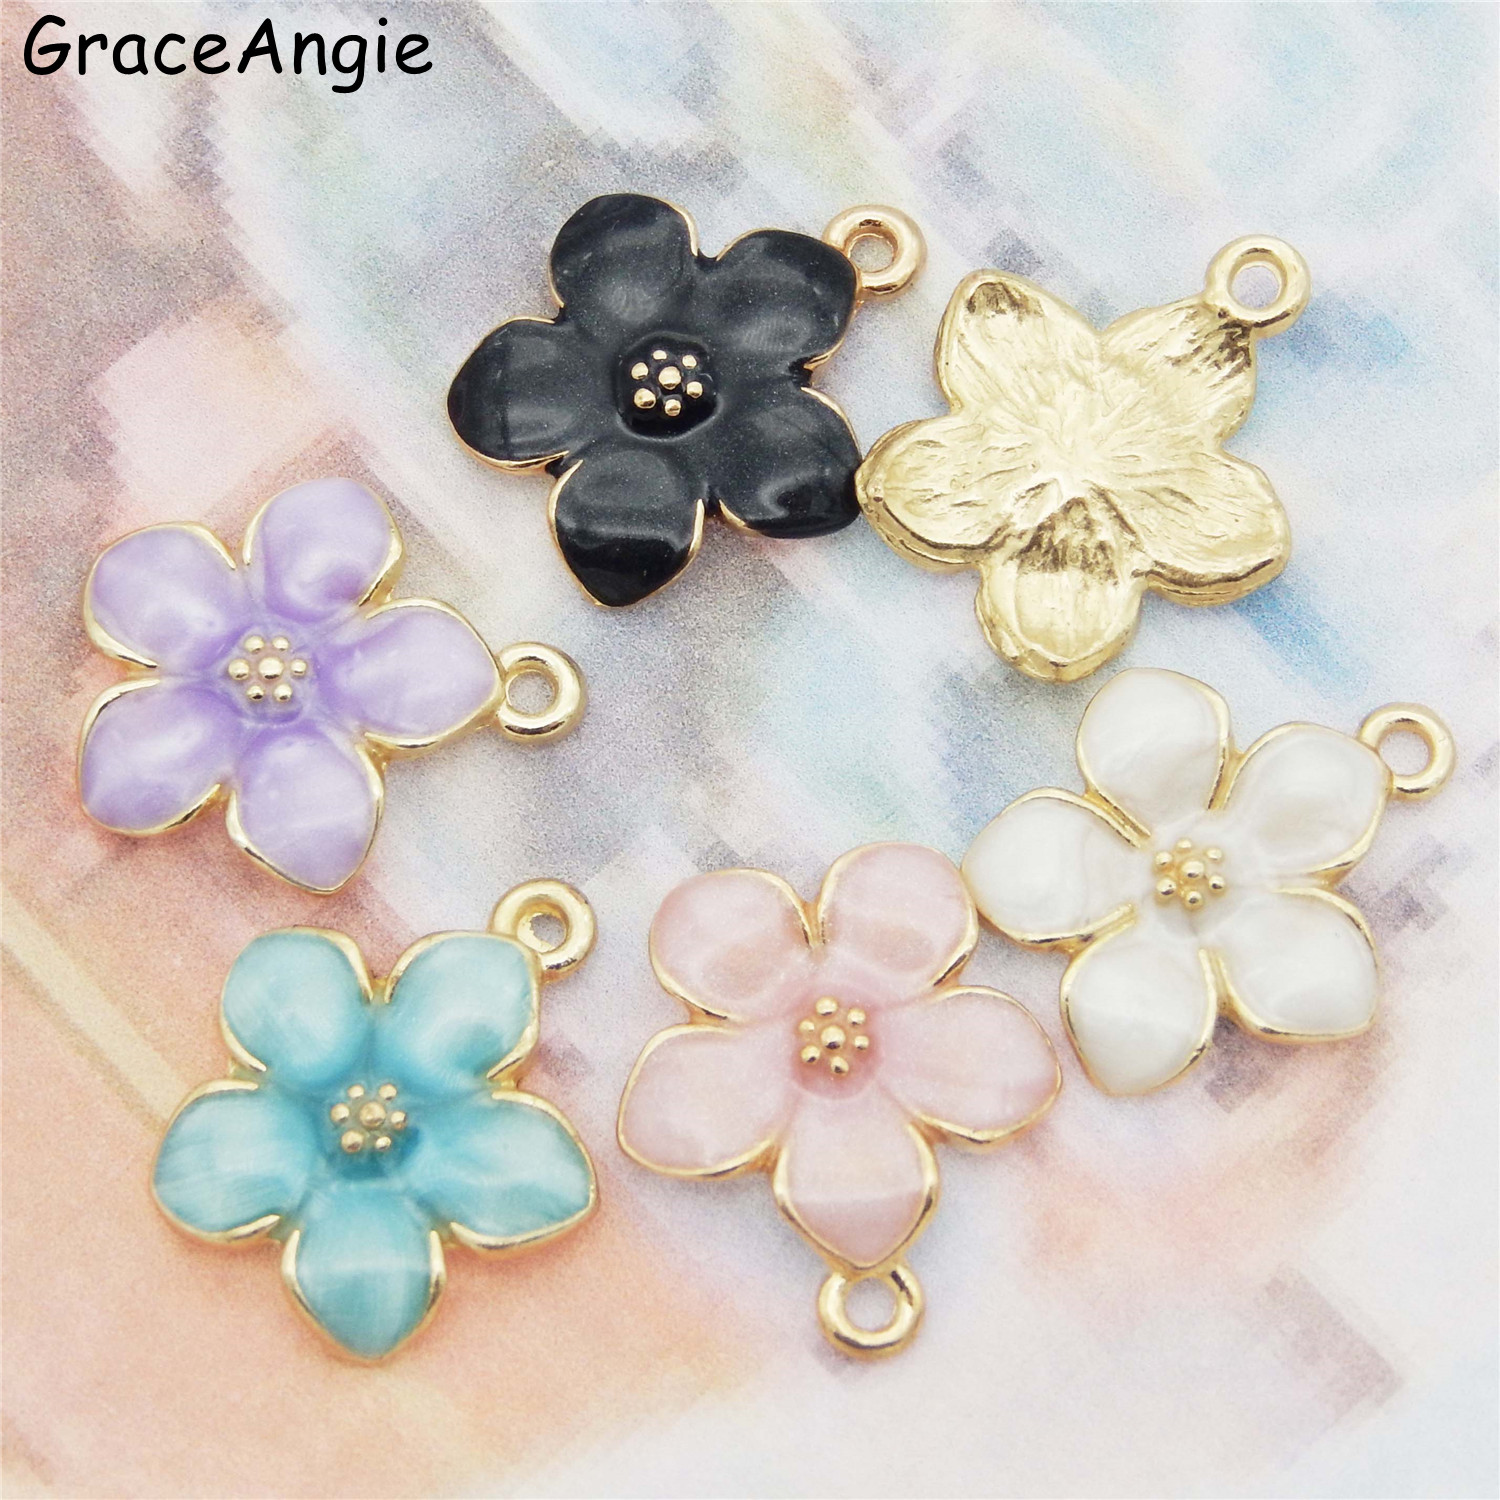 15PCS MIX Enamel Flower Charms For Earrings Pendants Necklace Jewelry Findings Handmade Craft DIY Bangle Bracelet Dec 5 colors(China)